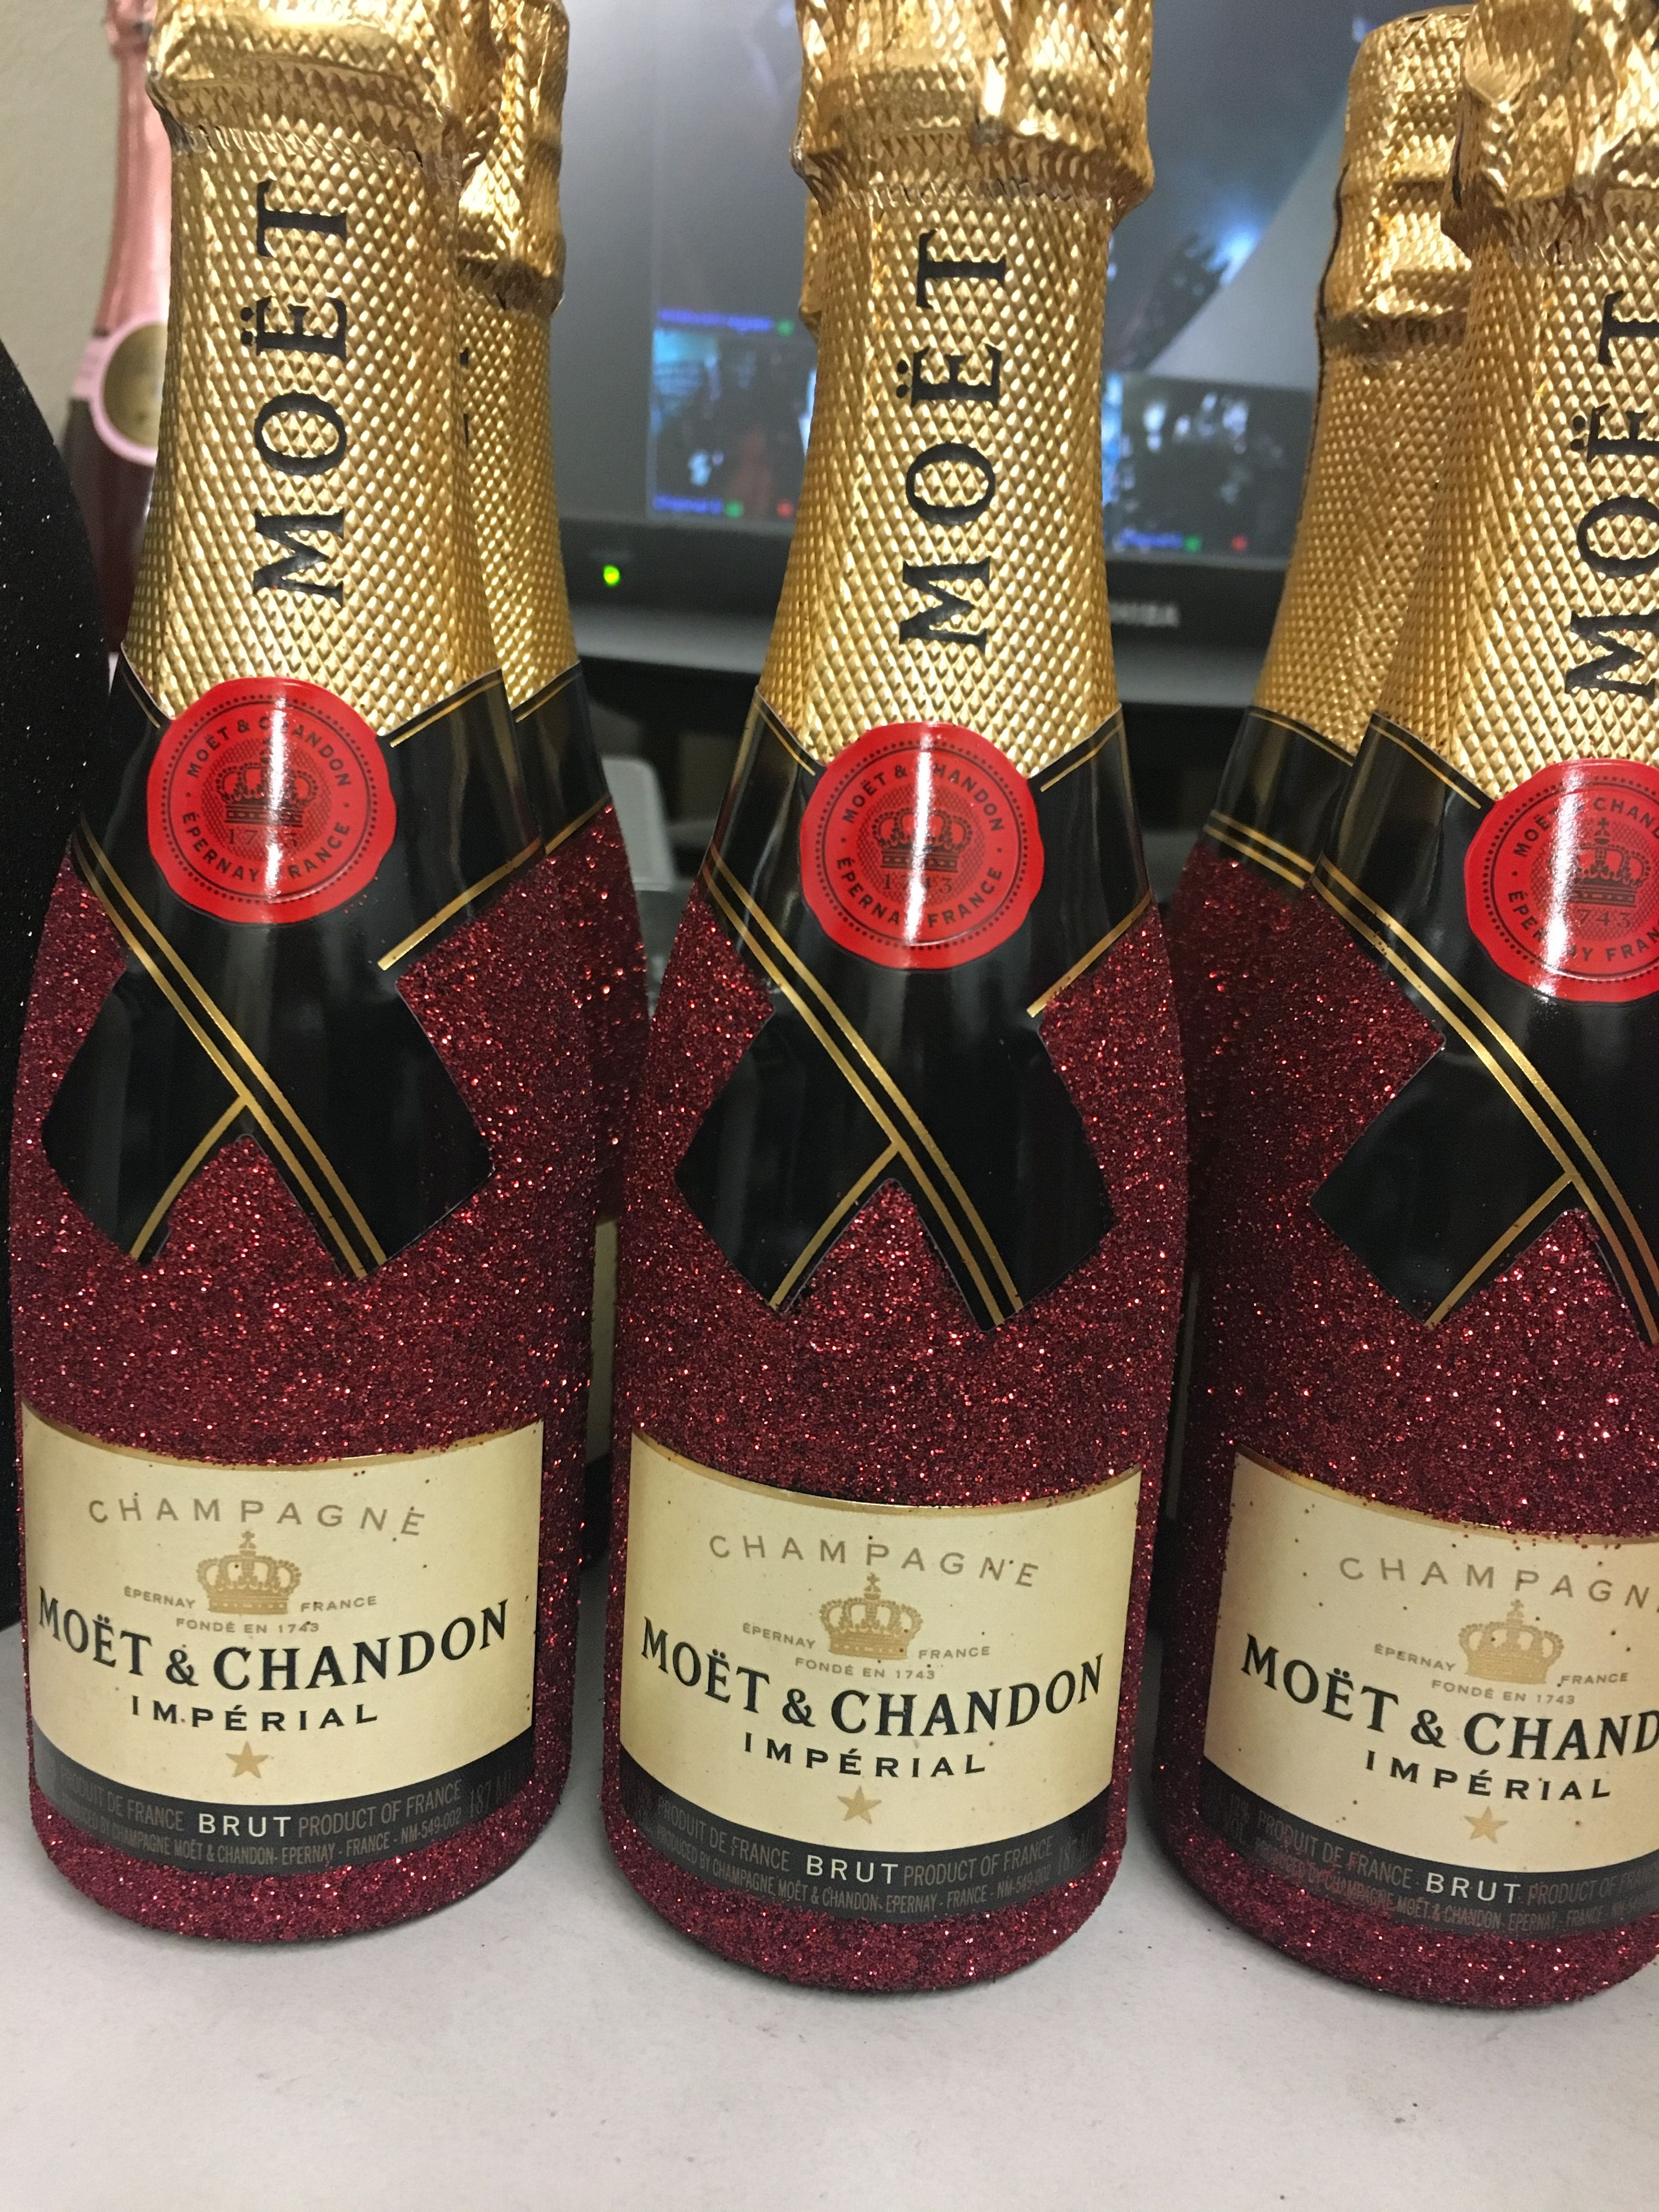 Mini 187ml Moet Imperial Brut Champagne Bottles Done In